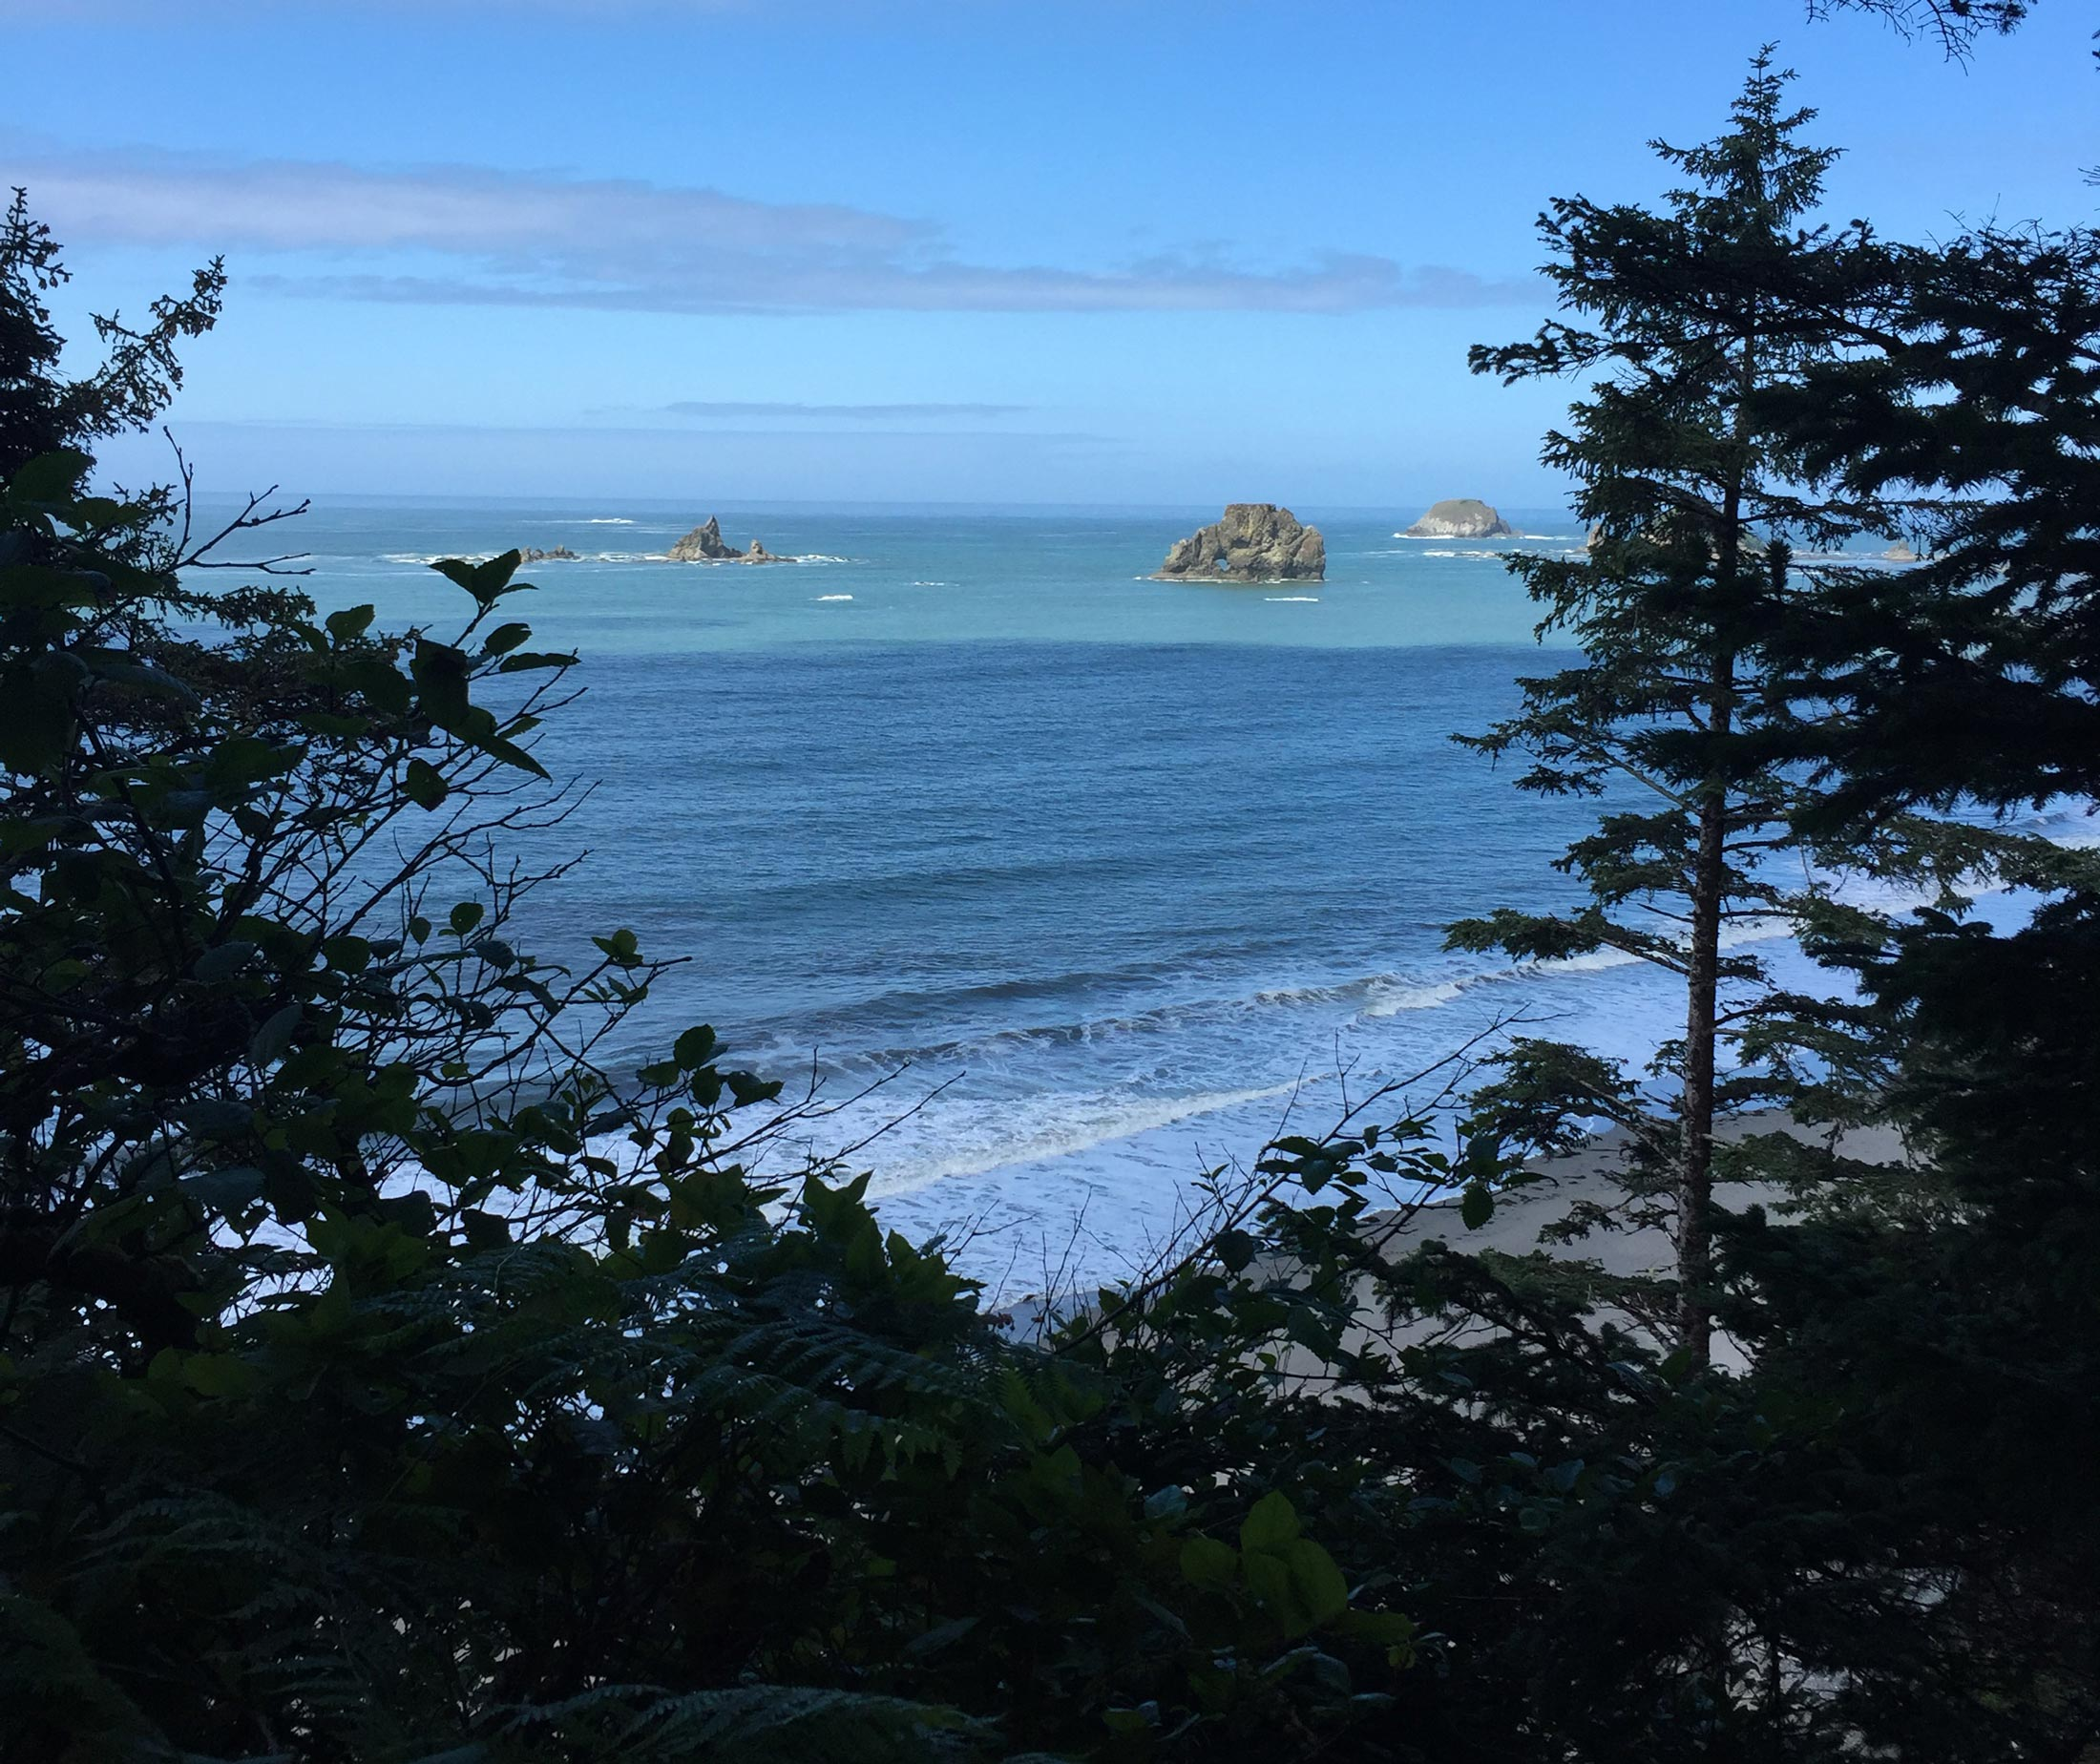 Sea stacks off the coast of Olympic National Park in Washington